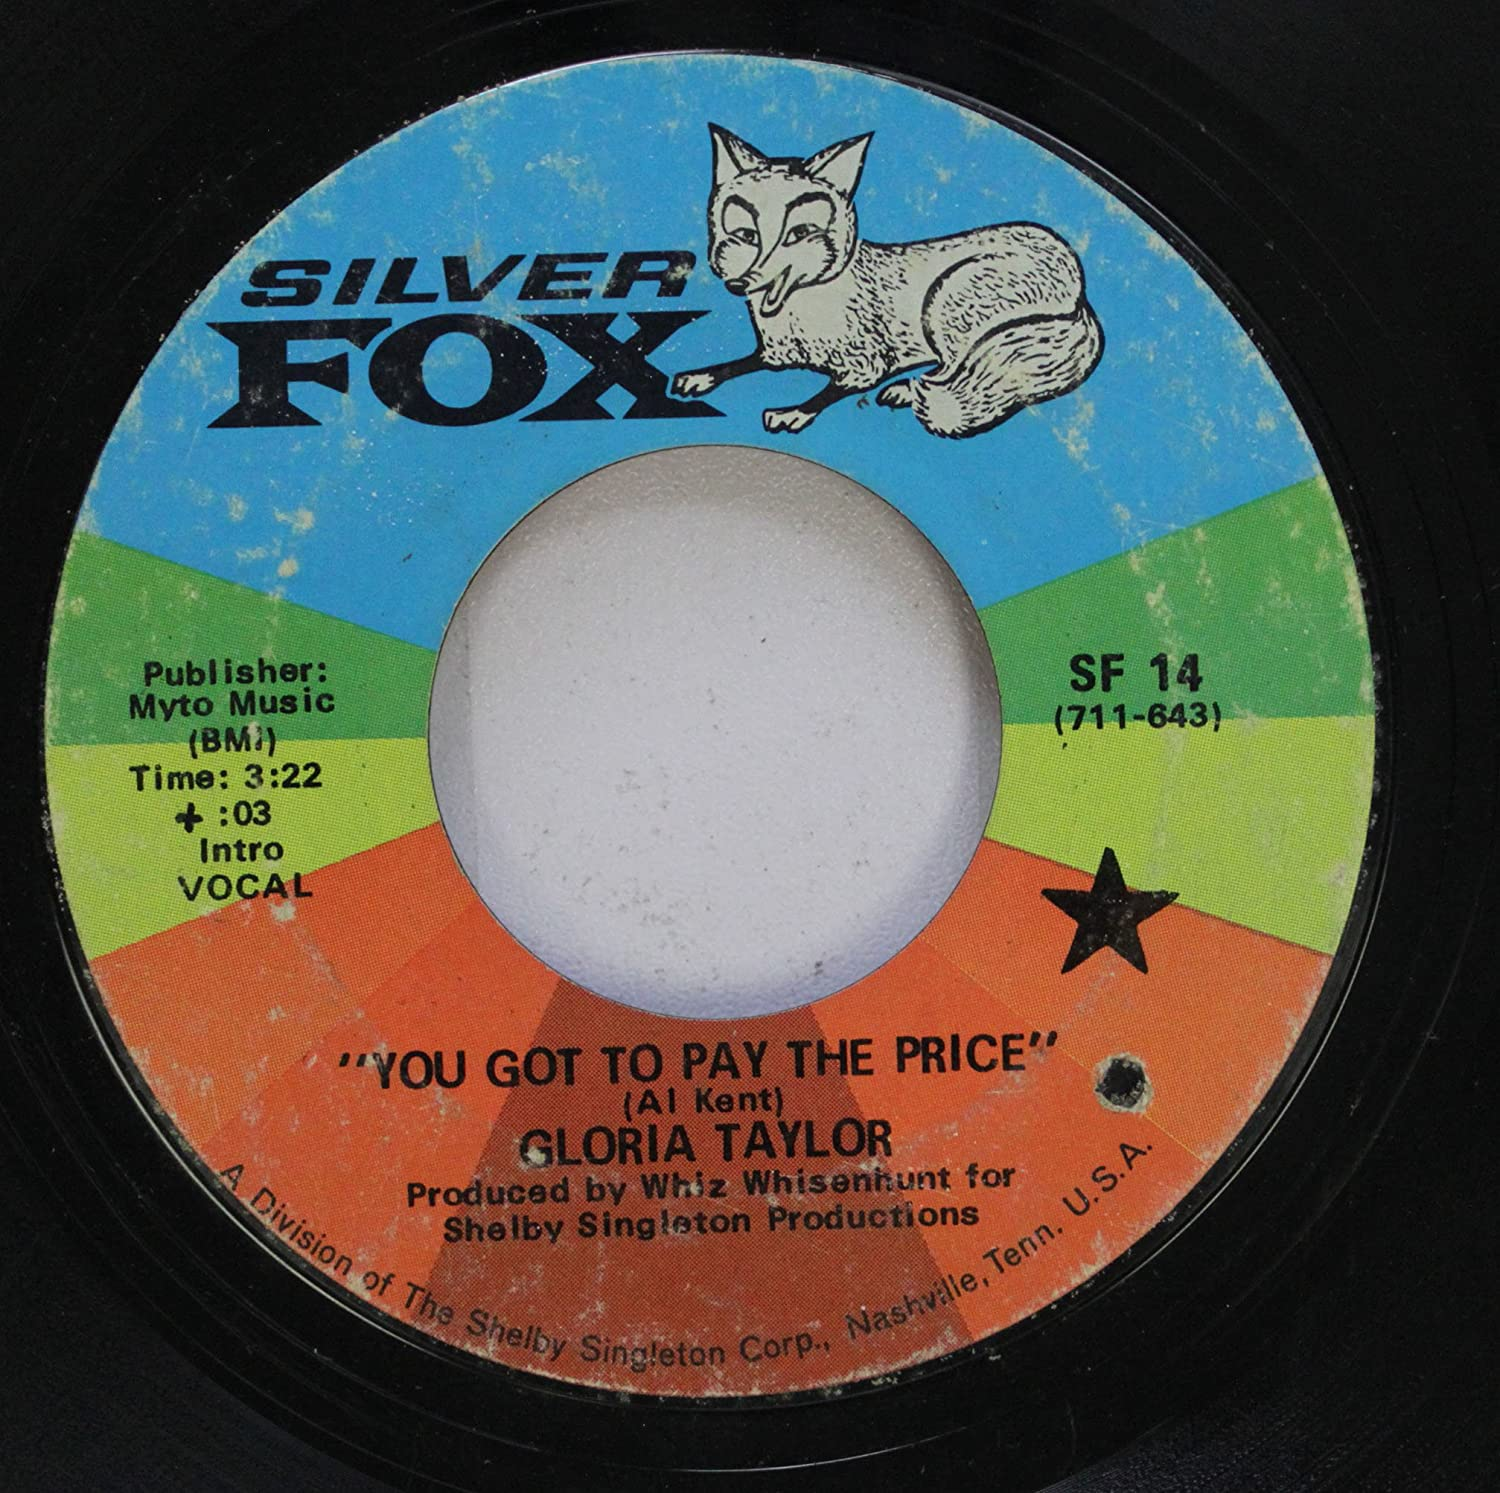 Image result for you got to pay the price gloria taylor single images